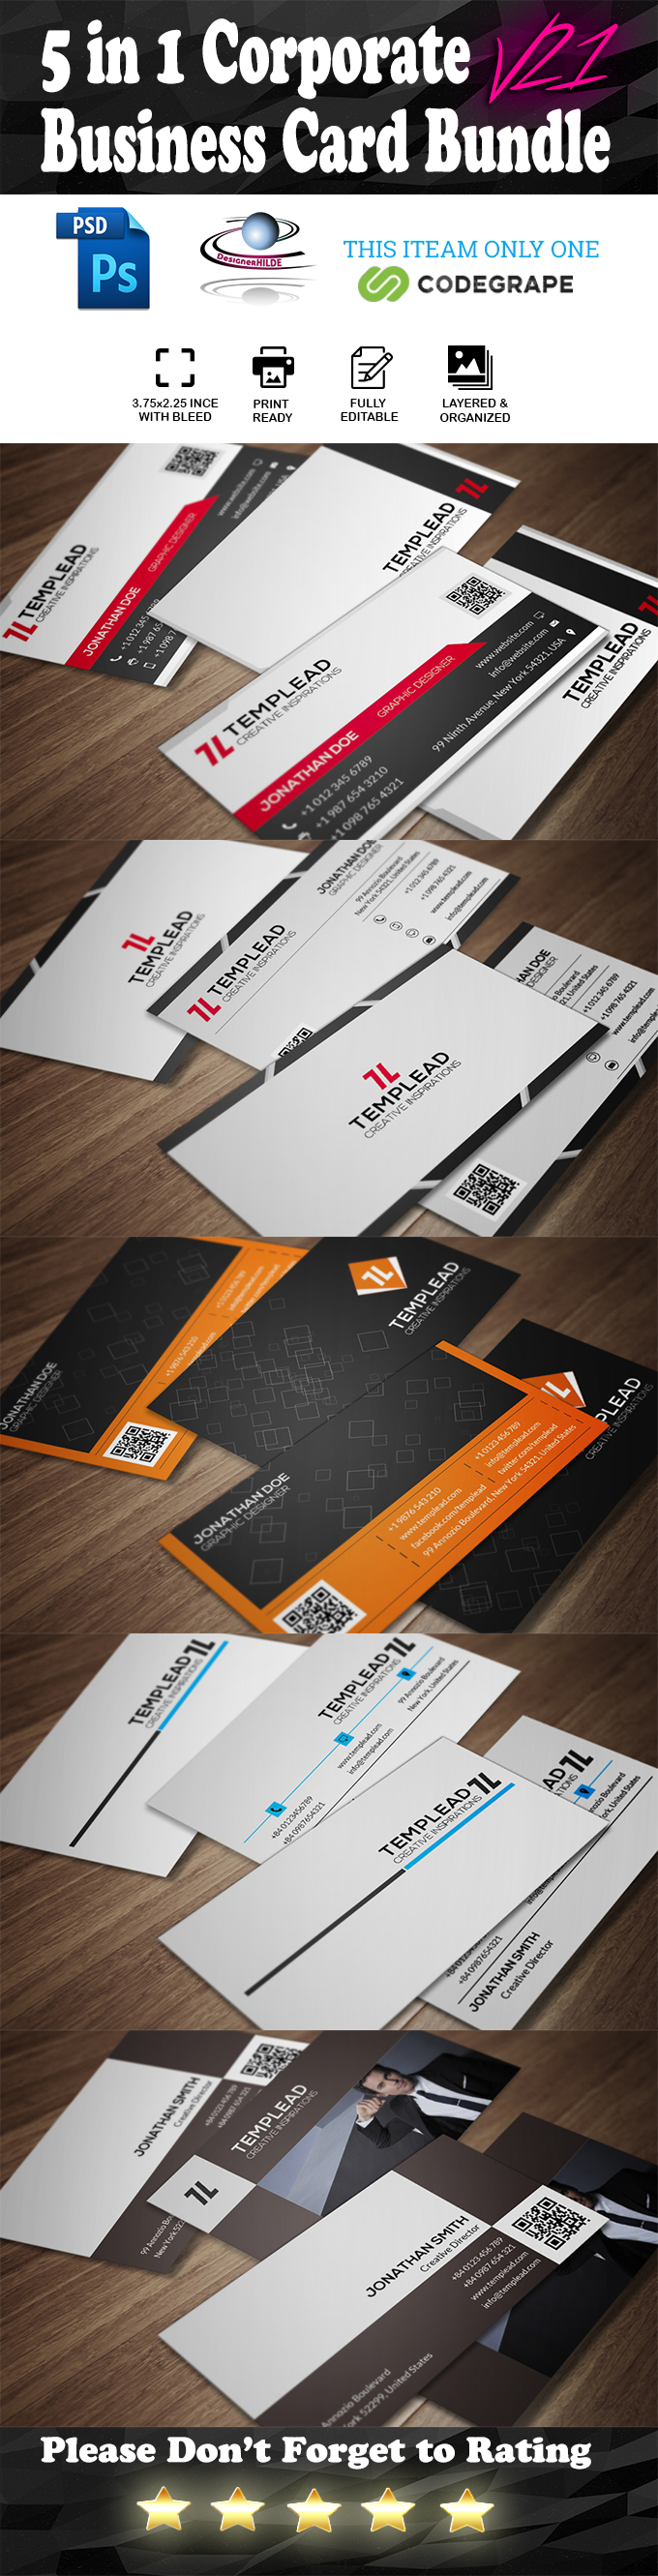 5 in 1 Corporate Business Card Bundle V. 21